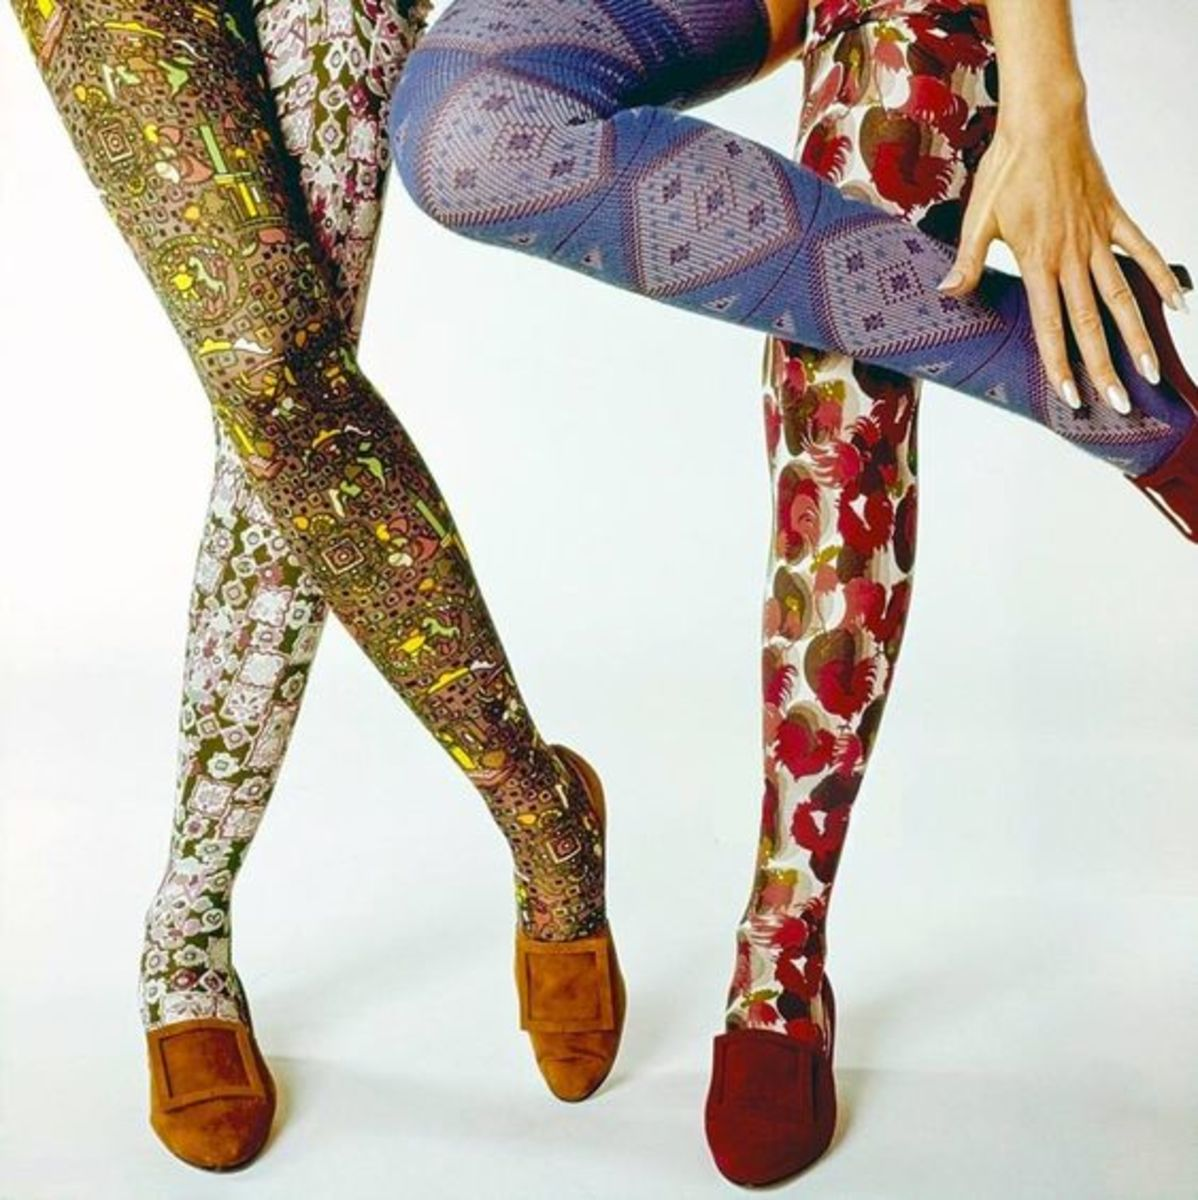 Dress your legs in lovely patterns of spring and summer